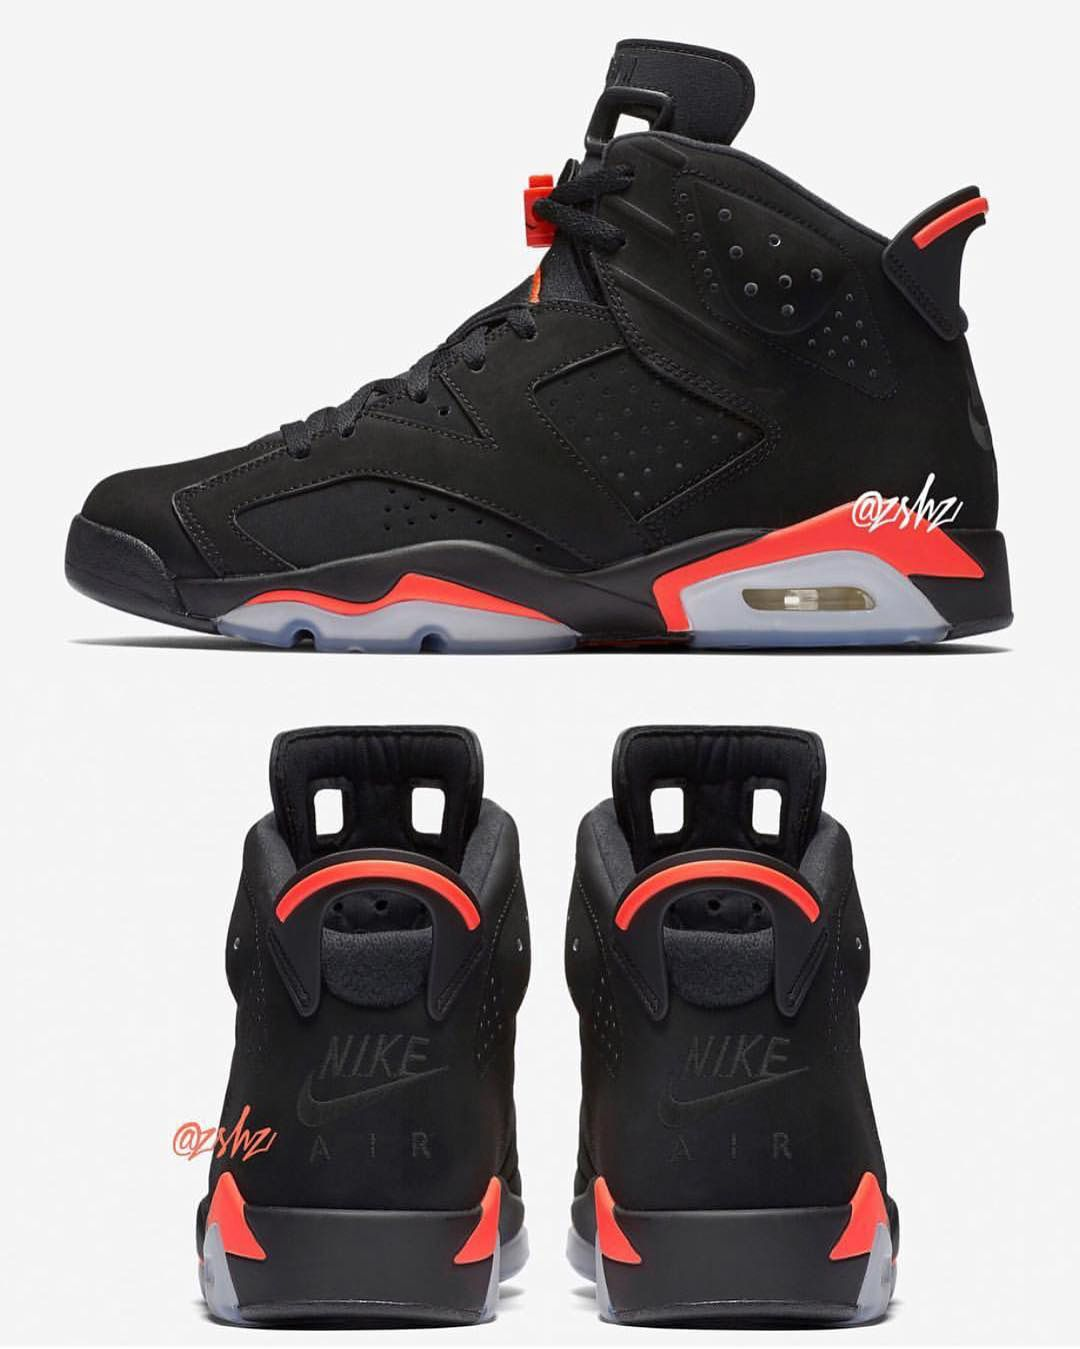 Air Jordan 6 Black Infrared | Chaussure nike jordan, Air